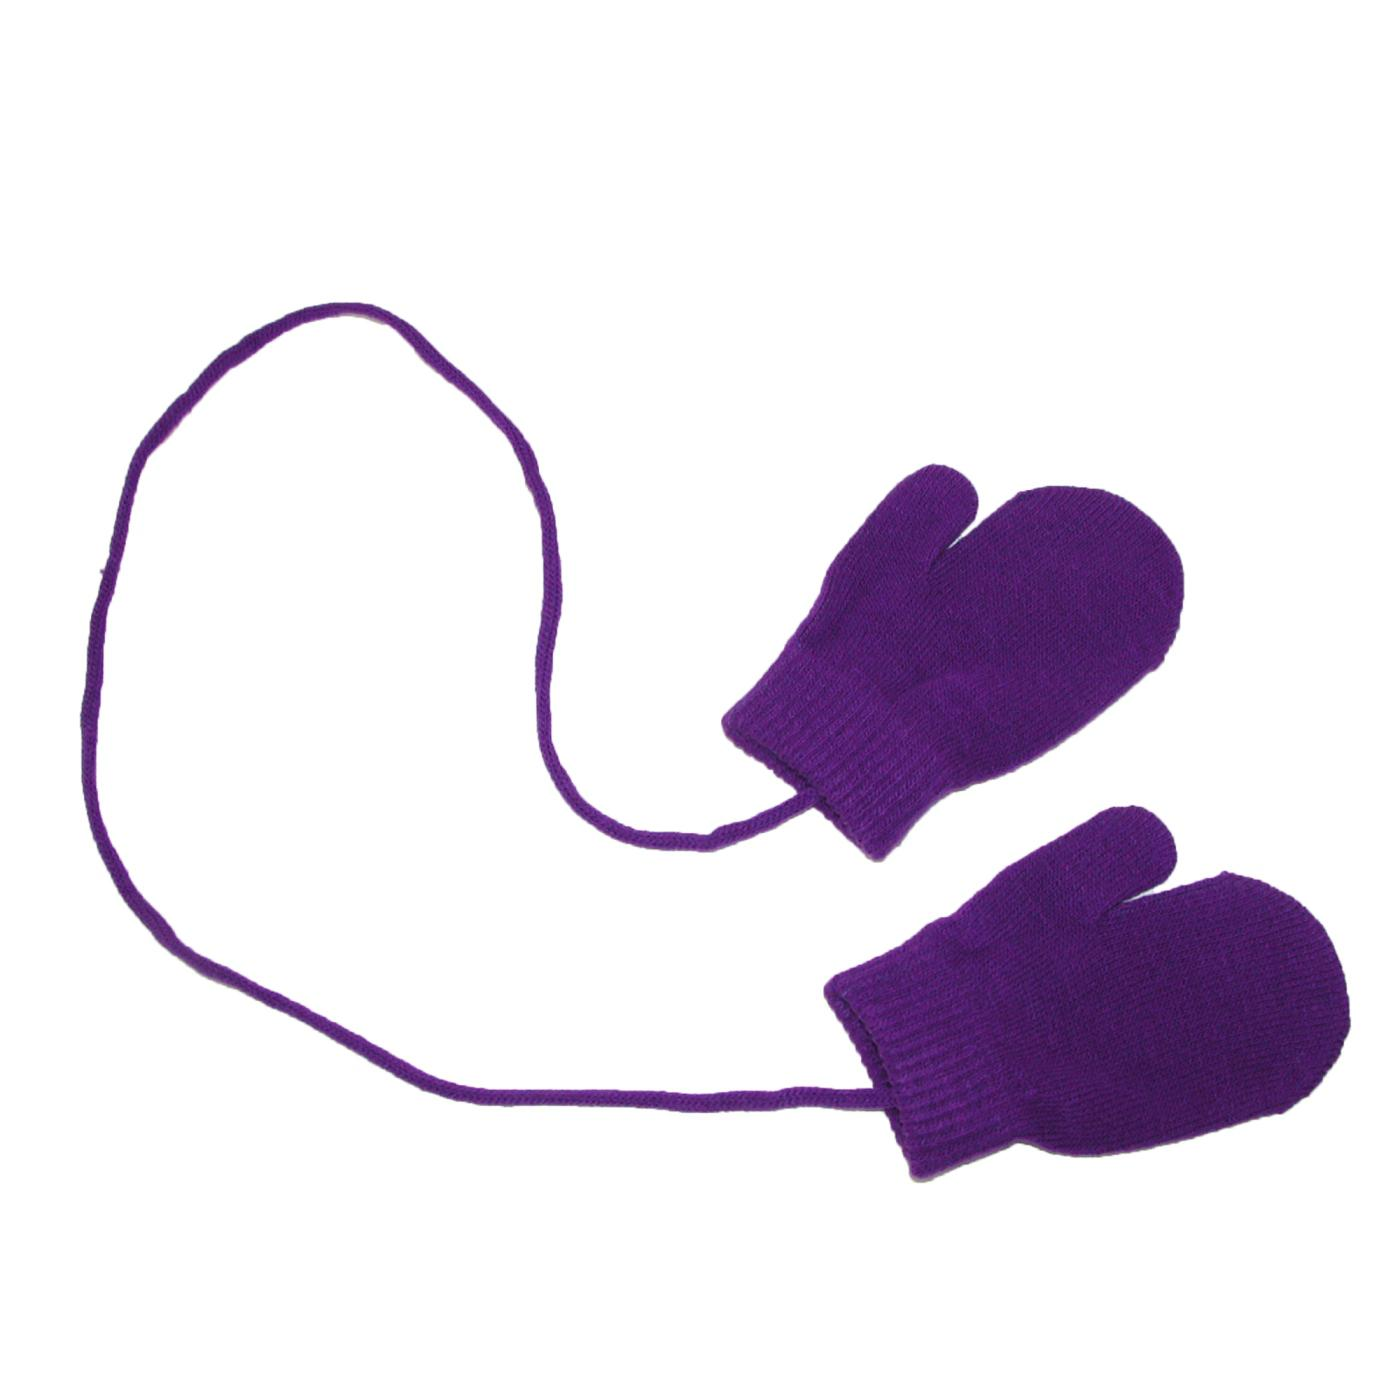 Dorfman_Pacific_Toddler_Stretch_Mittens_on_a_String_-